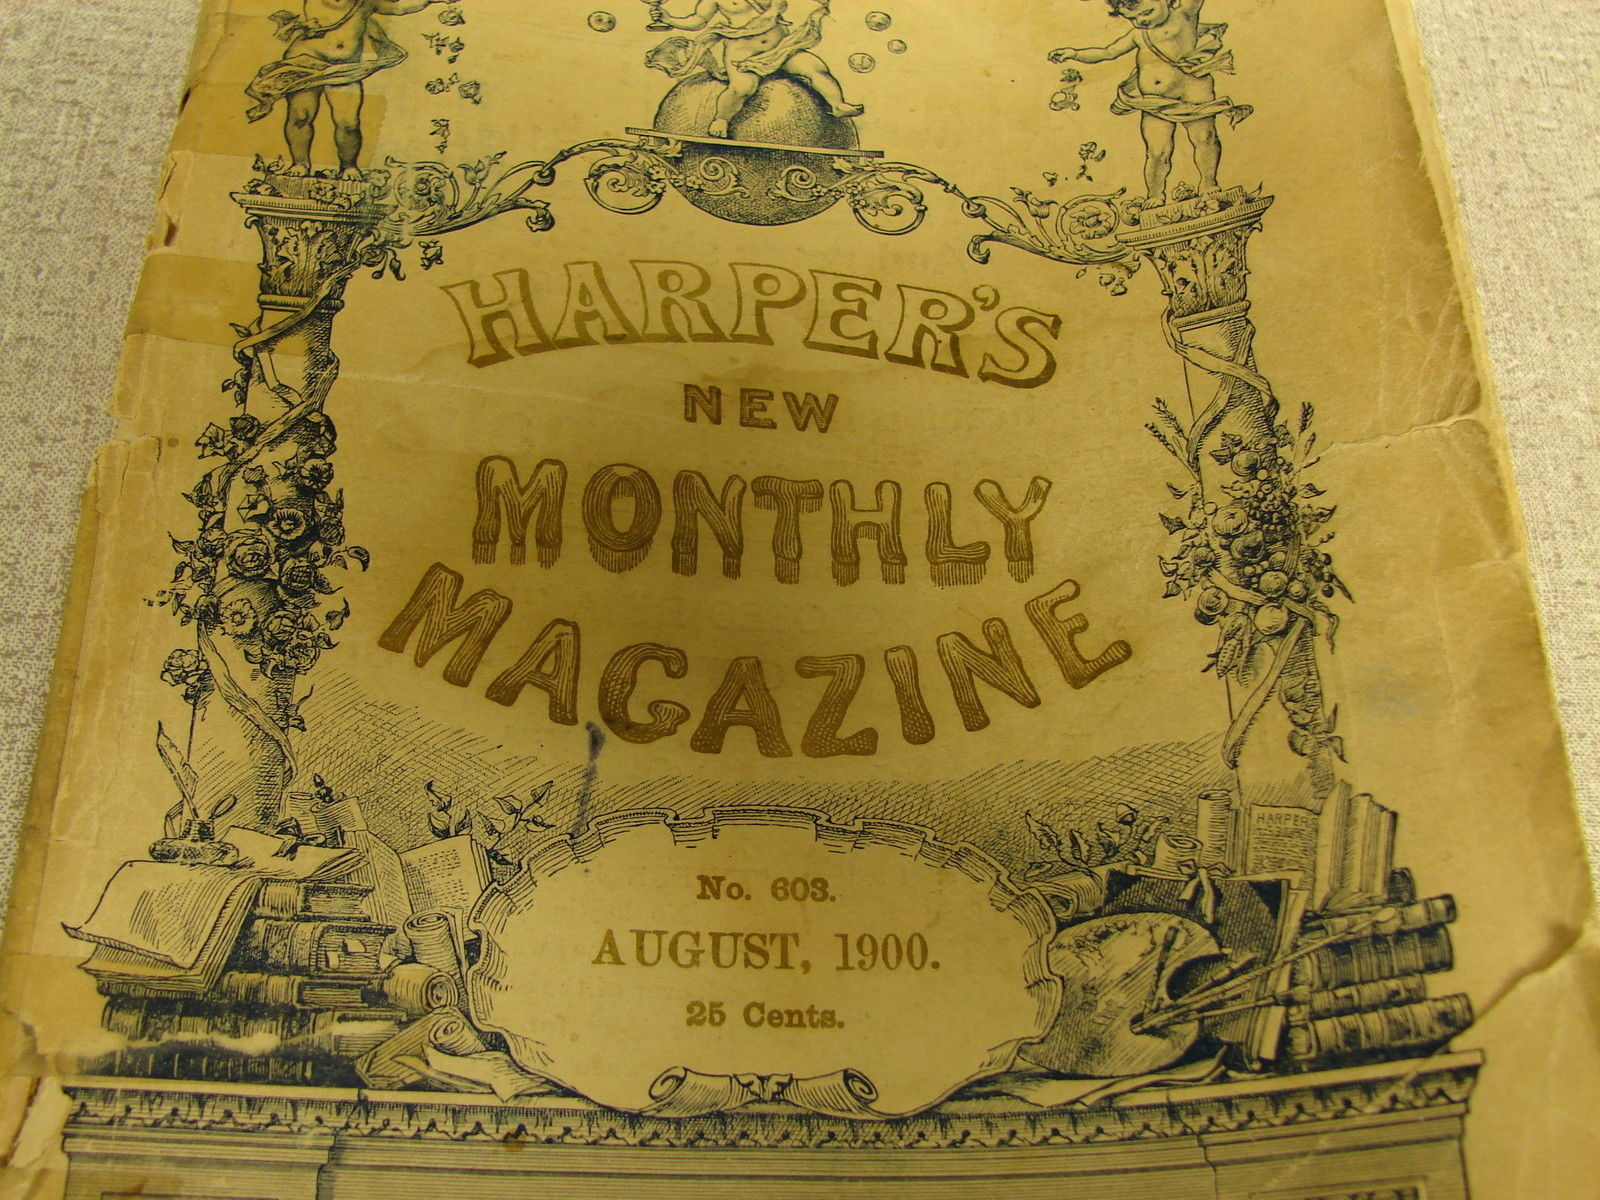 Harpers monthly magazine No. 603 August 1900 image 2